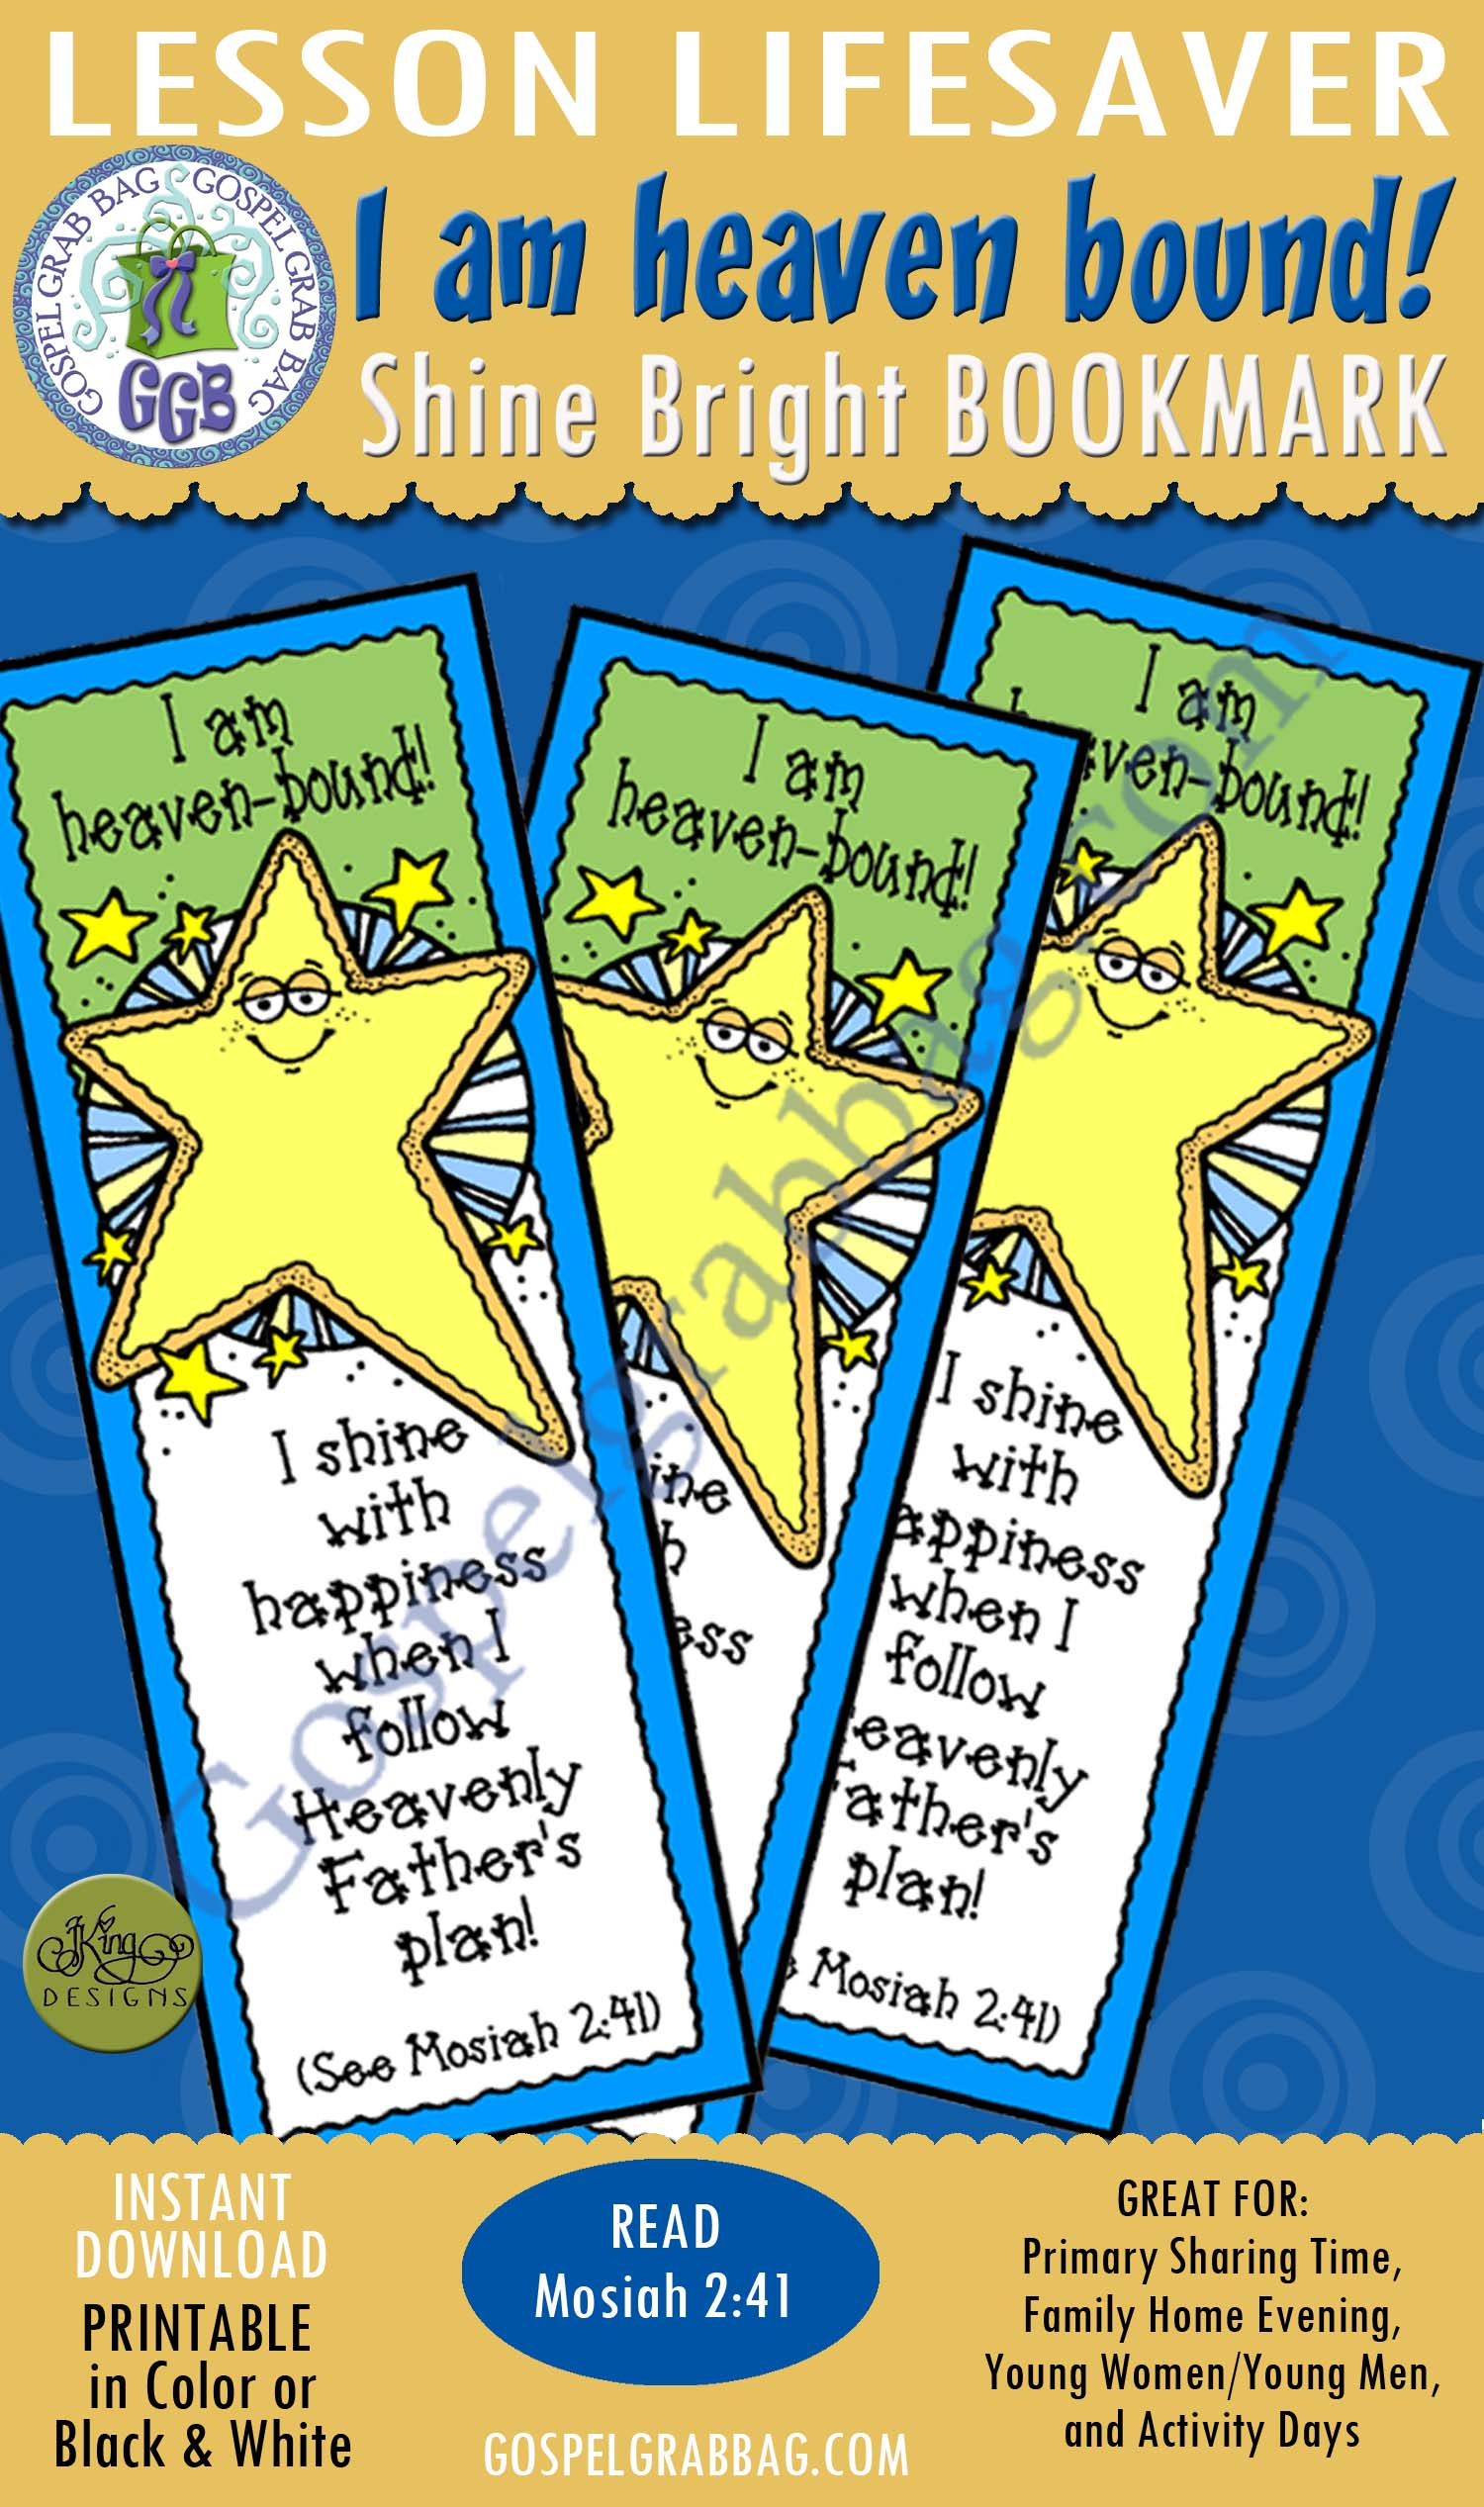 plan of happiness  salvation  heavenly father u0026 39 s plan for me